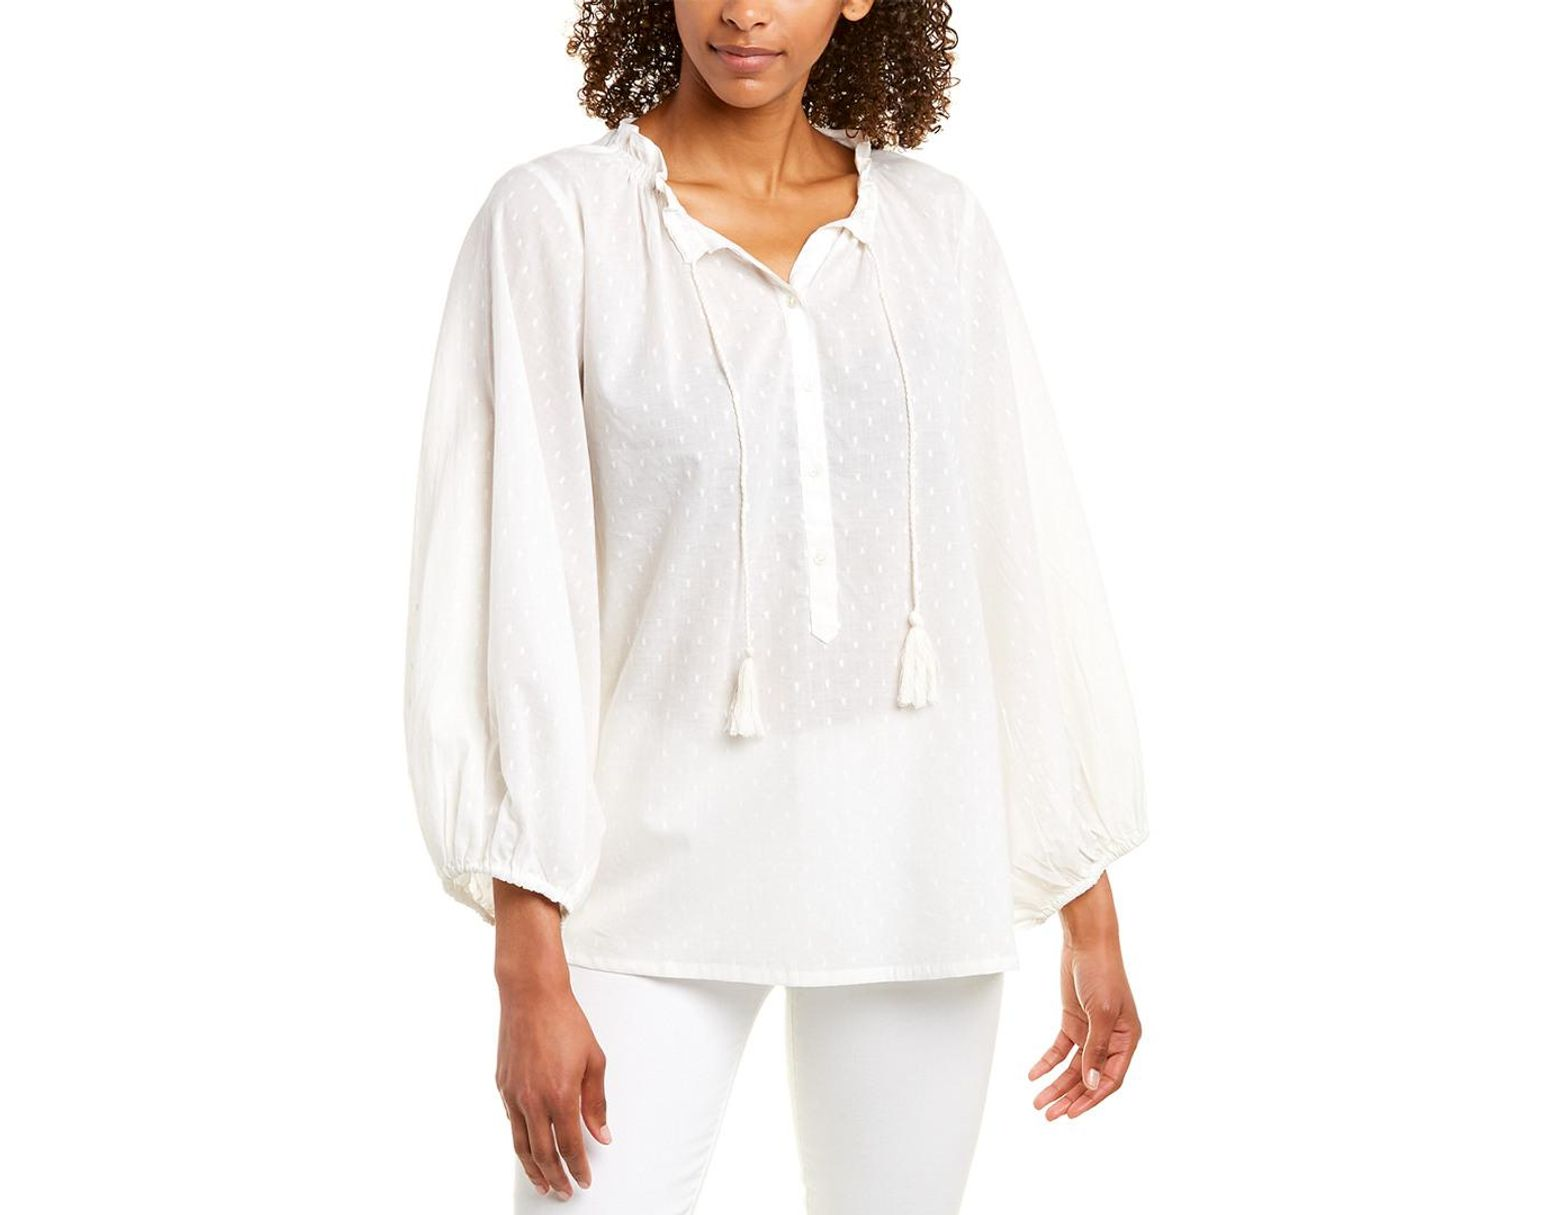 61896db93d4 Emerson Fry India Collection Blouse in White - Lyst